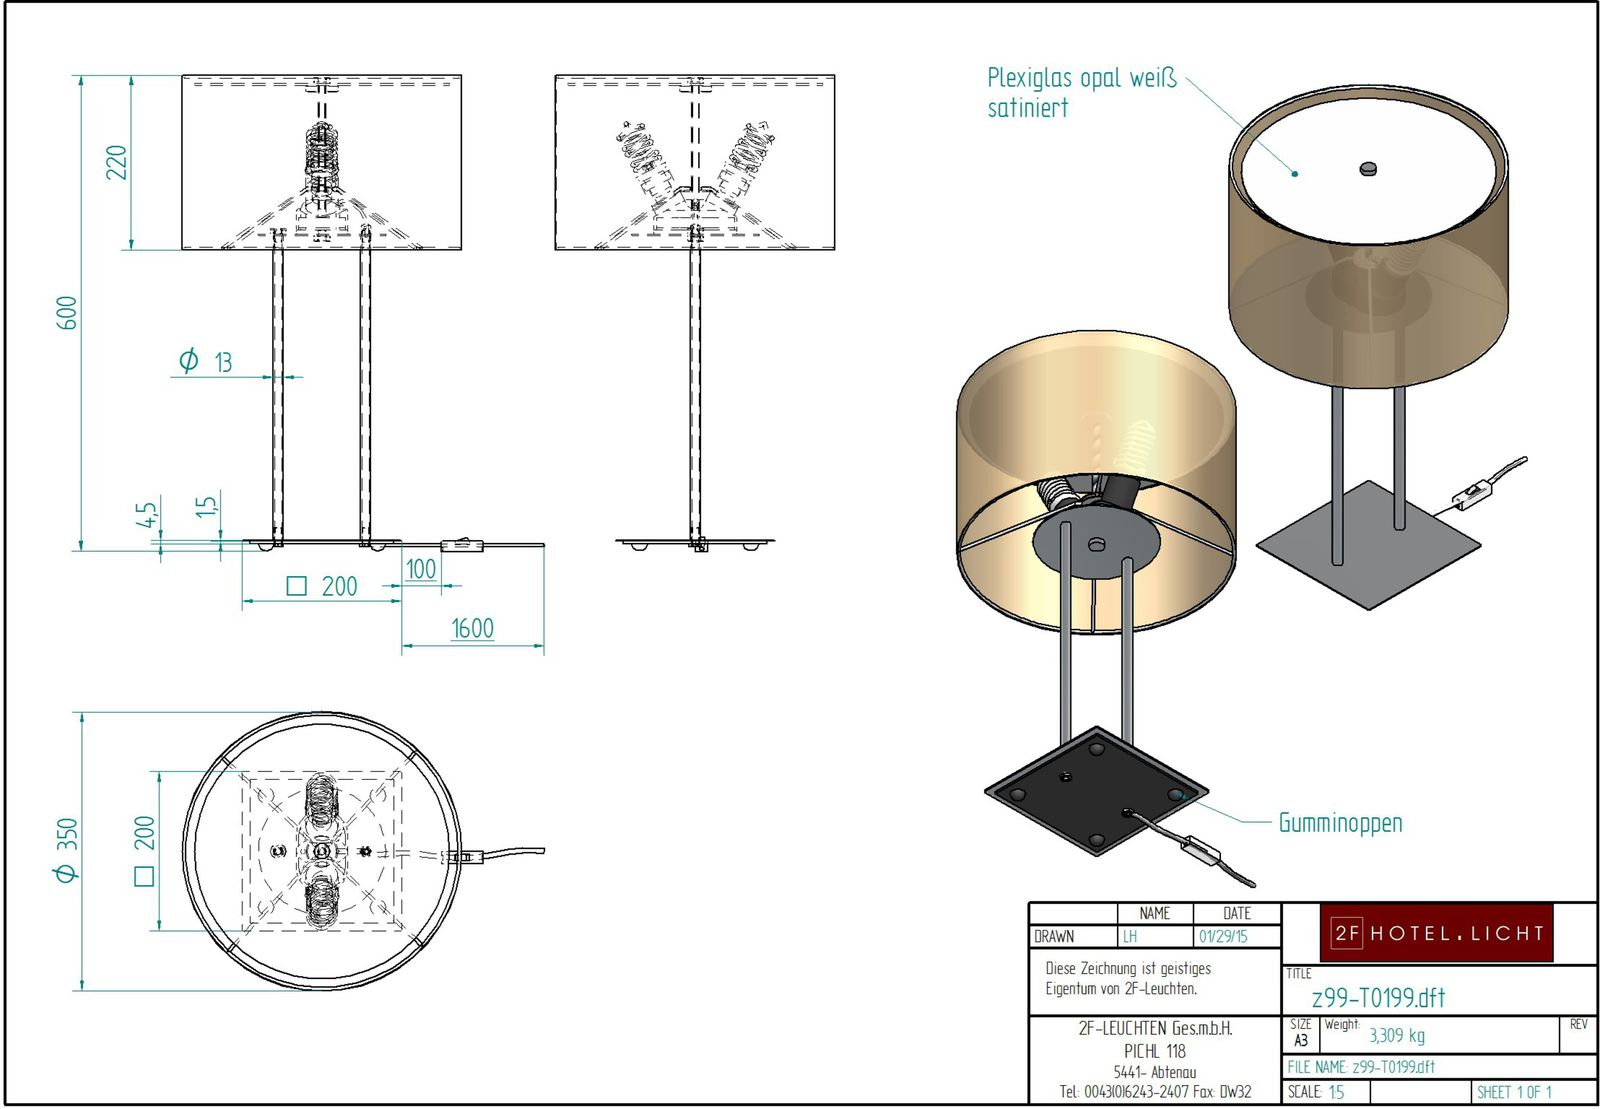 table lamp, l=Ø350mm, height=600mm, surface: metall, CM nickel brushed, techn. Data: 2xE27, 15W, cable: transparent